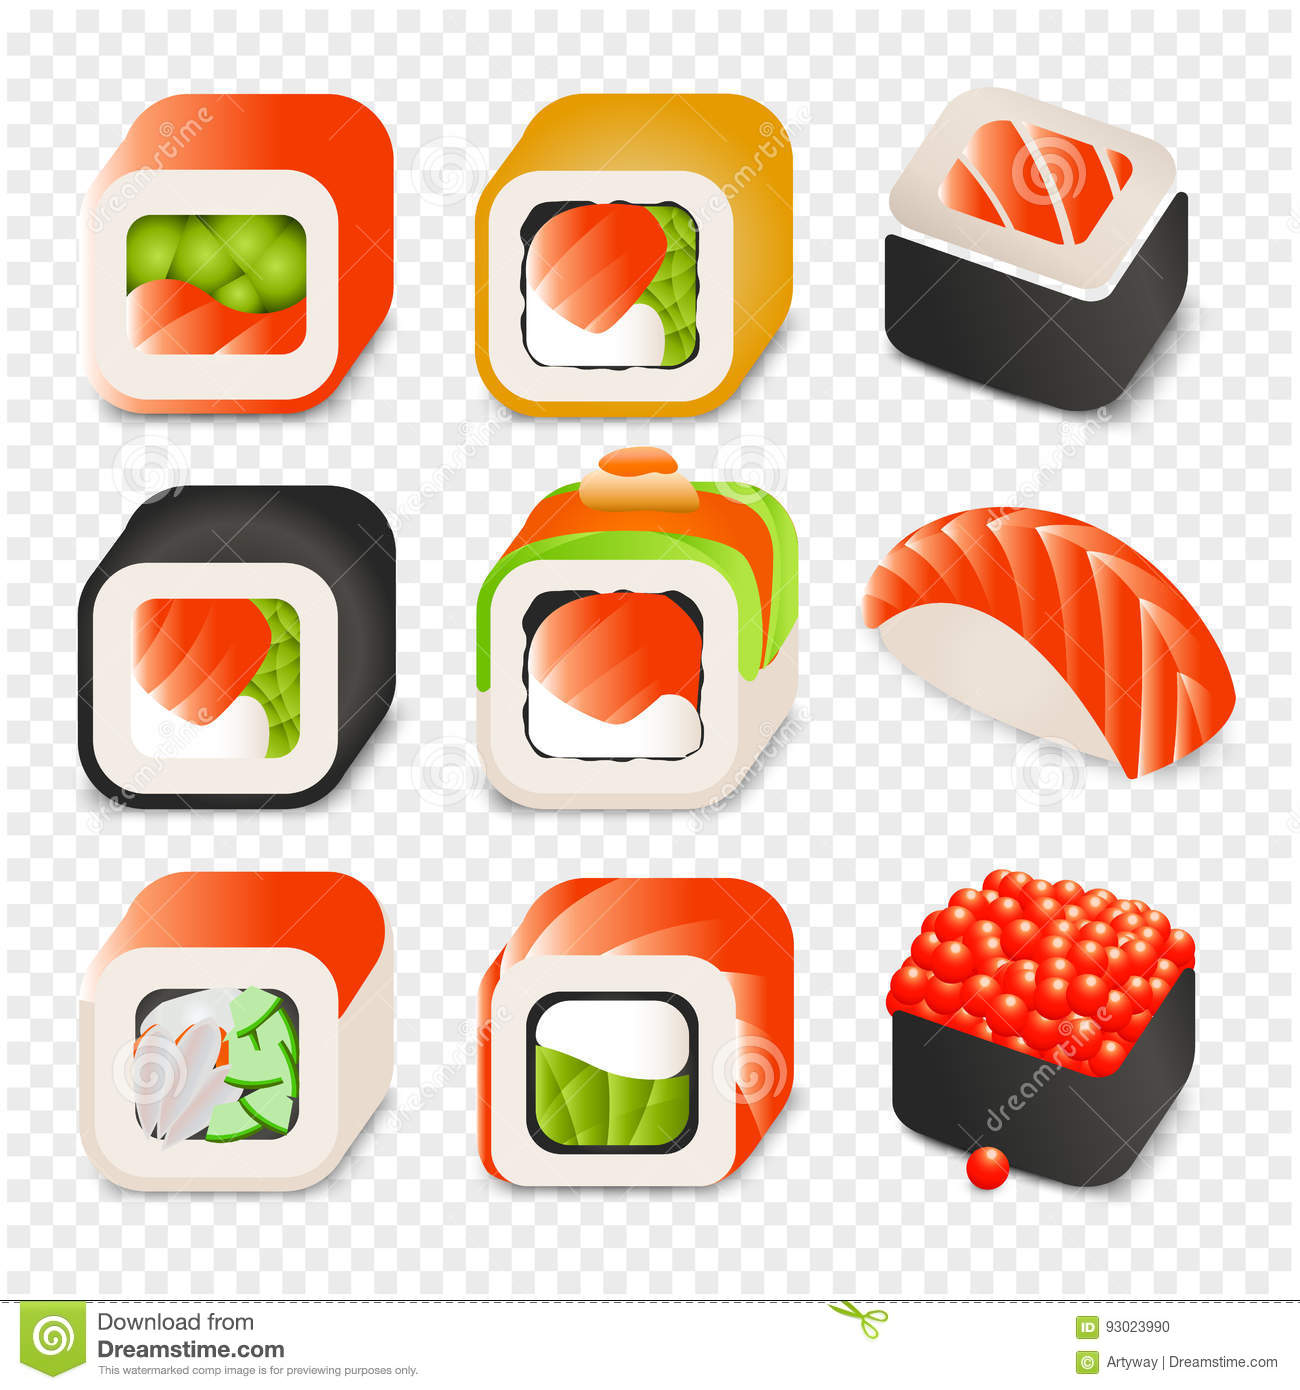 Colorful japanese food cartoon style design icons set with different sushi and rolls on transparent background isolated